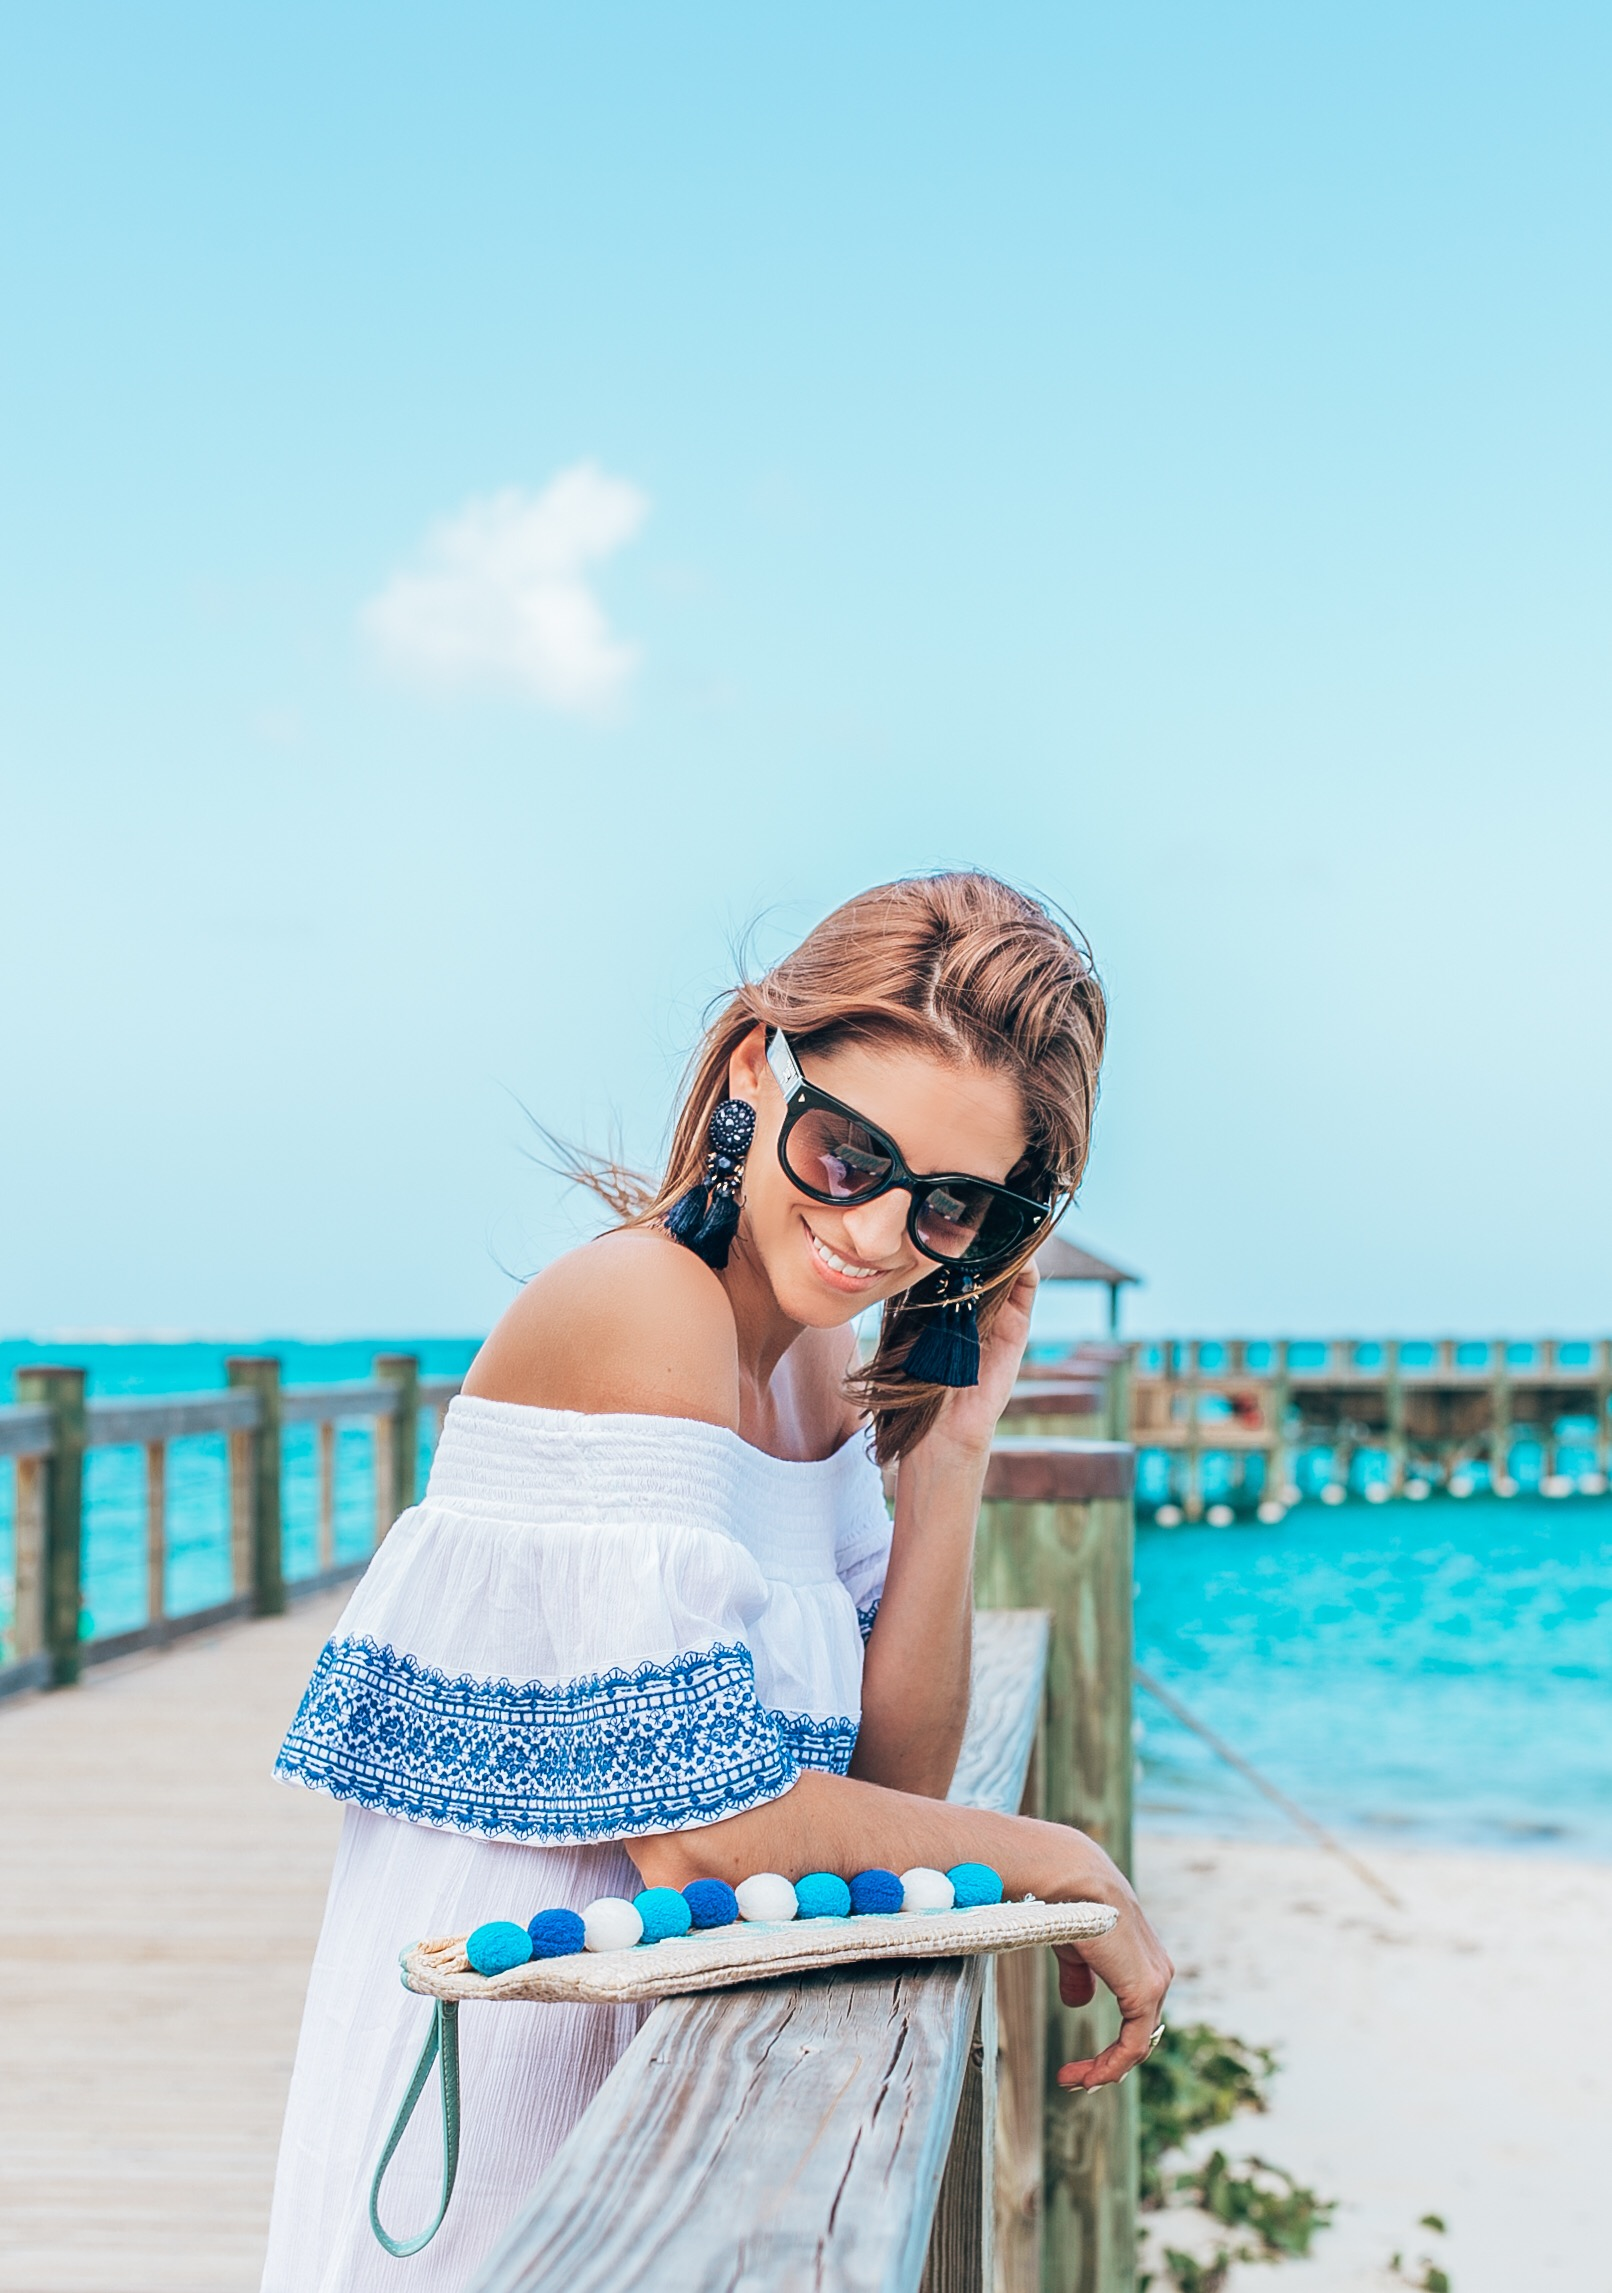 Perfect white and blue off the shoulder dress with valentino rockstud flip flops and Aloha pom pom bag; baha mar resort Bahamas; mandy furnis sparkleshinylove